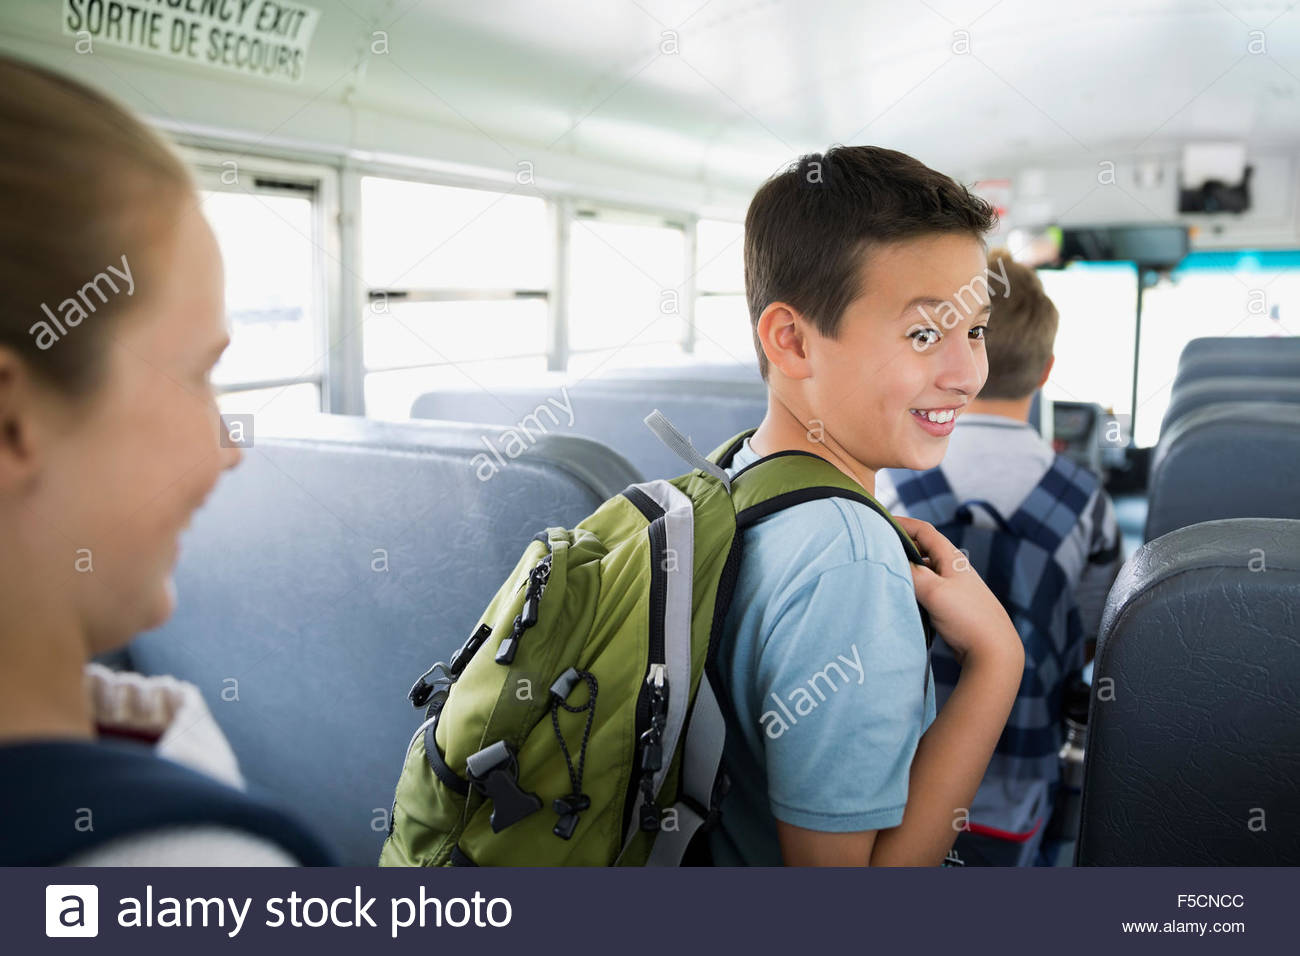 Smiling schoolboy with backpack in aisle school bus - Stock Image